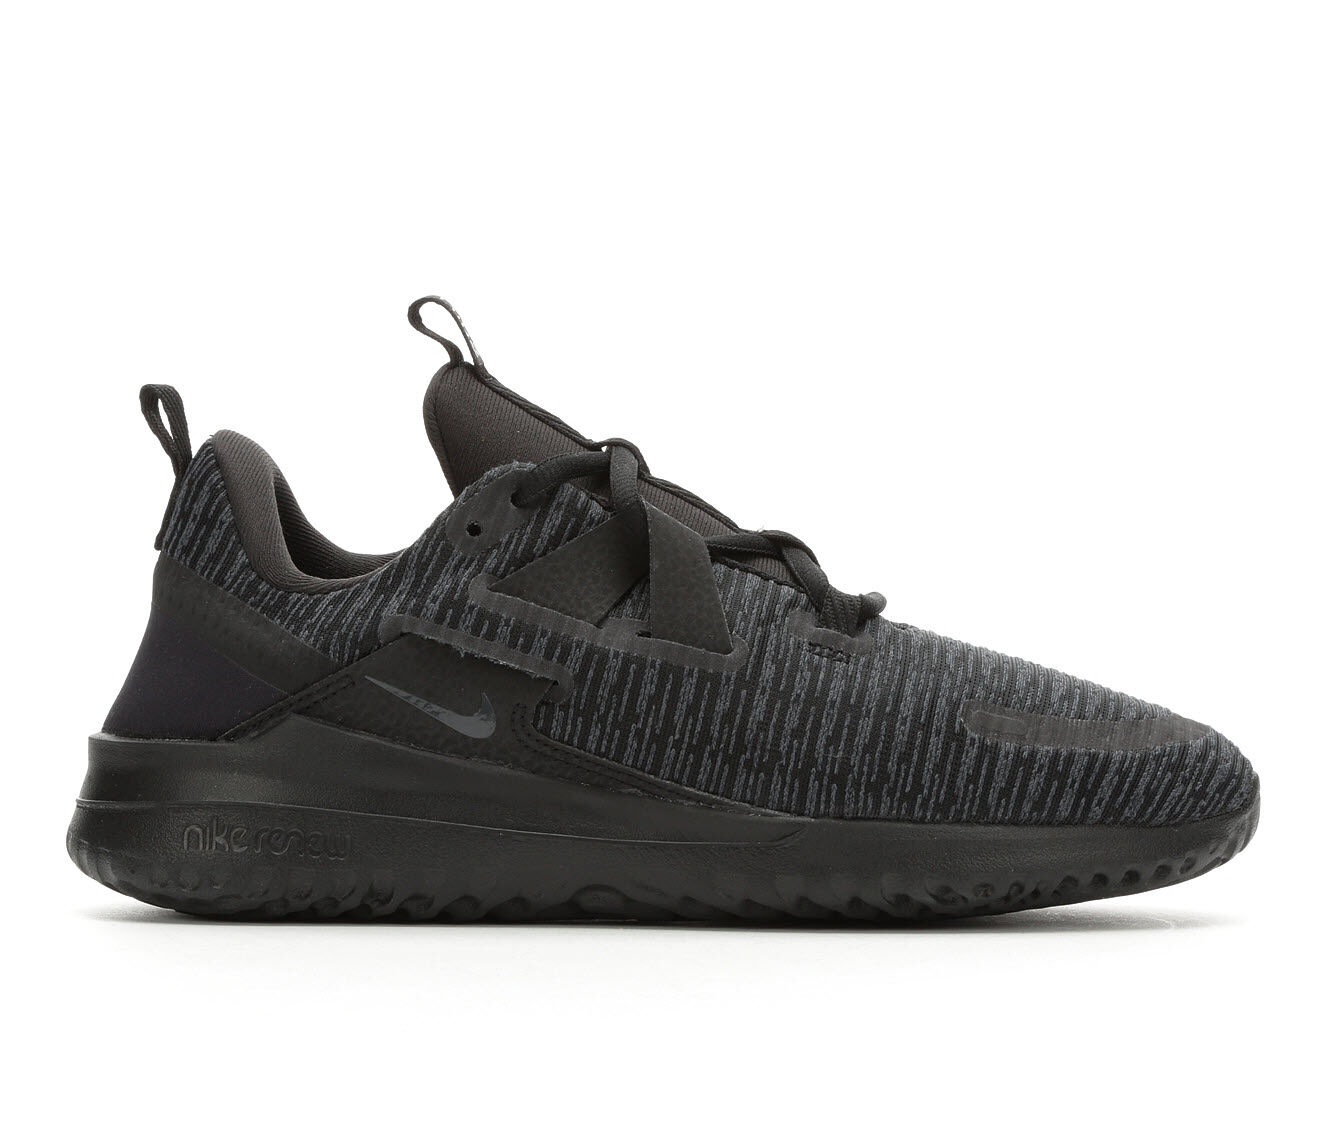 Best Quality Women's Nike Renew Arena Running Shoes Black/Anthracit